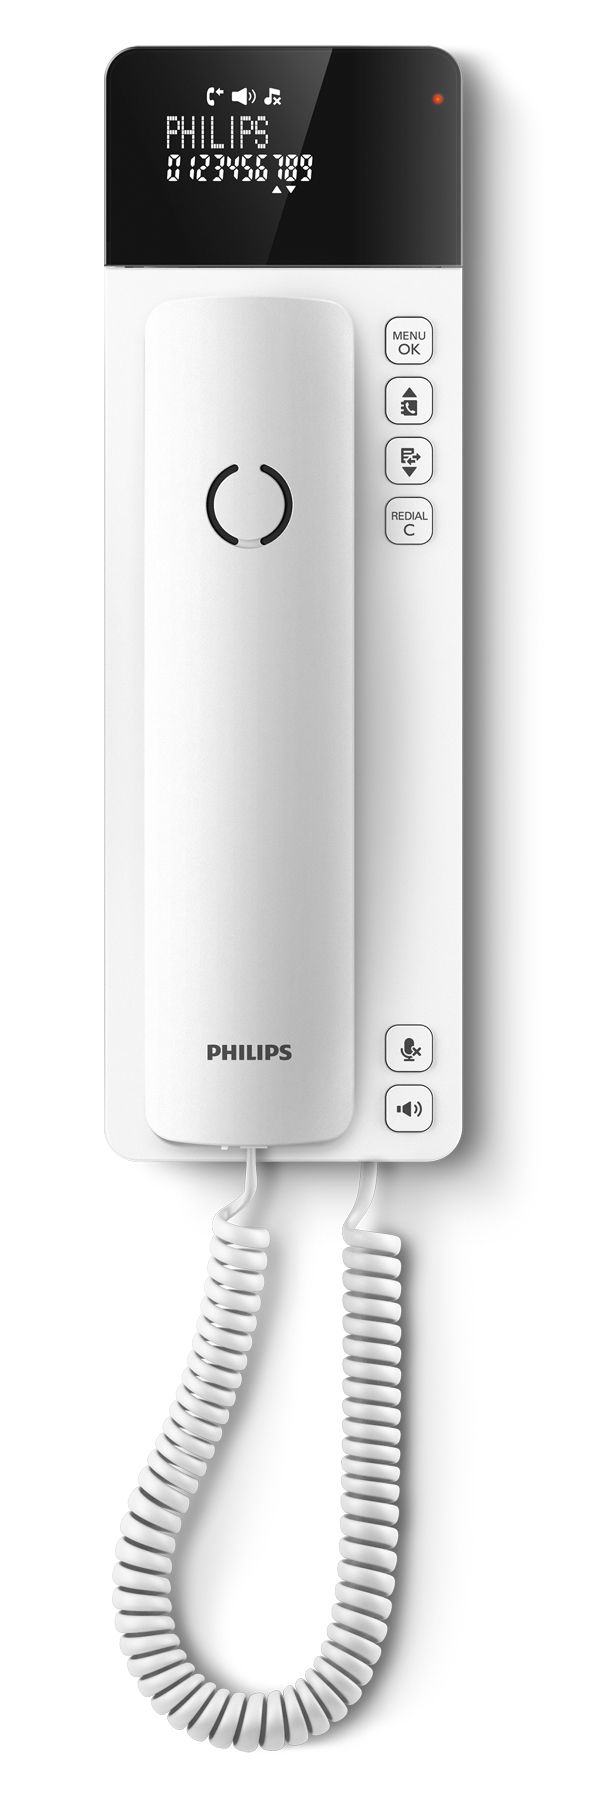 Philips M1 SCALA- This home phone model was conceived as an extension of Philips' design line into the corded phone market. It features a very rational yet innovative configuration and appearance: The vertical proportion delivers a very compact footprint and the device can be placed on a tabletop or mounted on a wall. In either situation the cleverly hinged high-contrast display remains easy to read from any angle. The carefully shaped and weighted handset feels comfortable in the hand and…